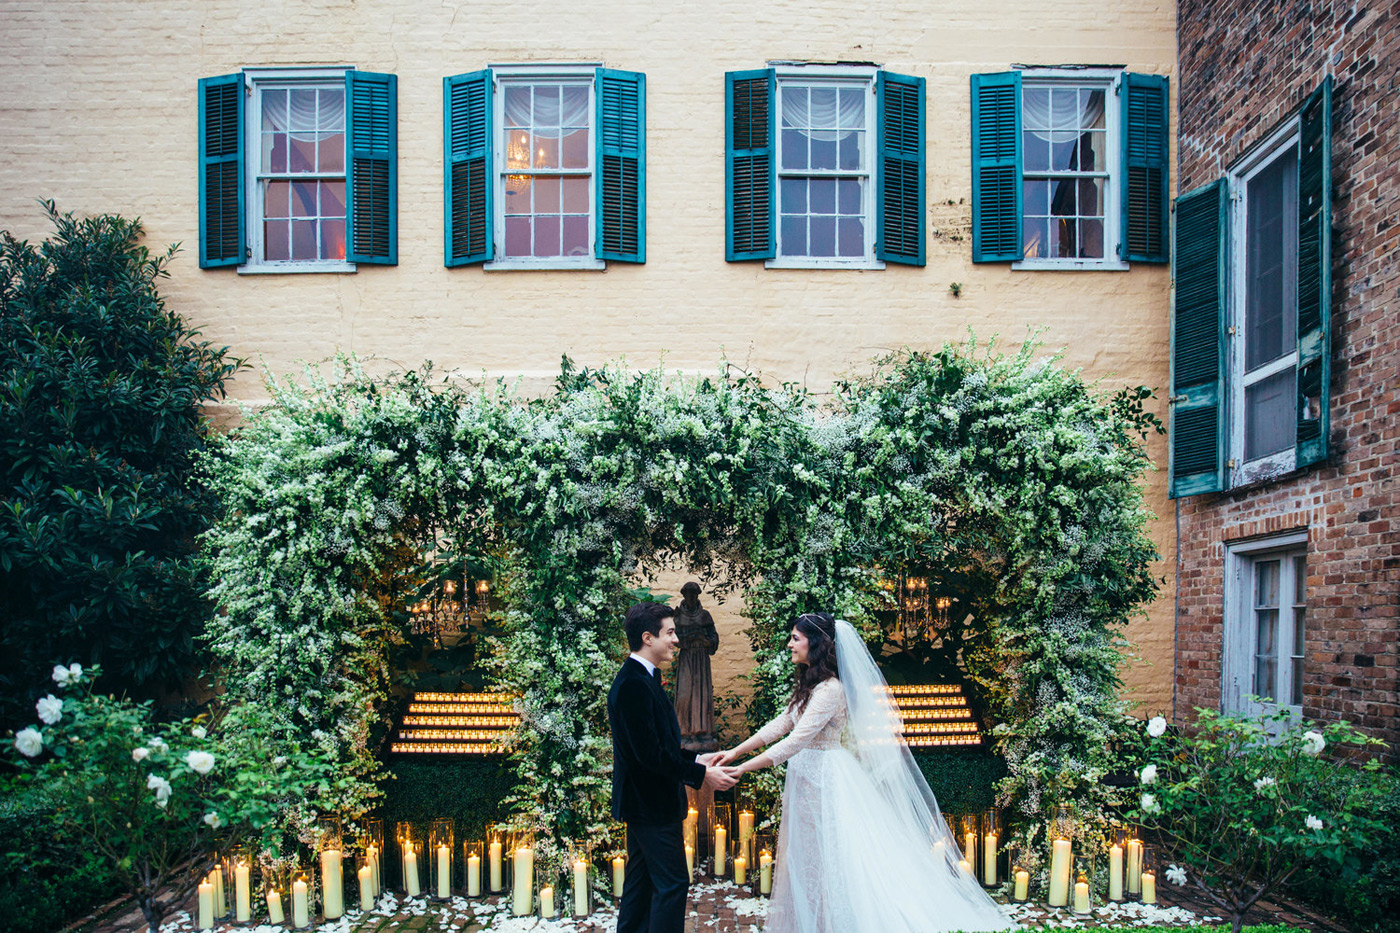 Bride and groom hold hands in front of greenery draping behind them and candles flickering with white rose petals on the ground